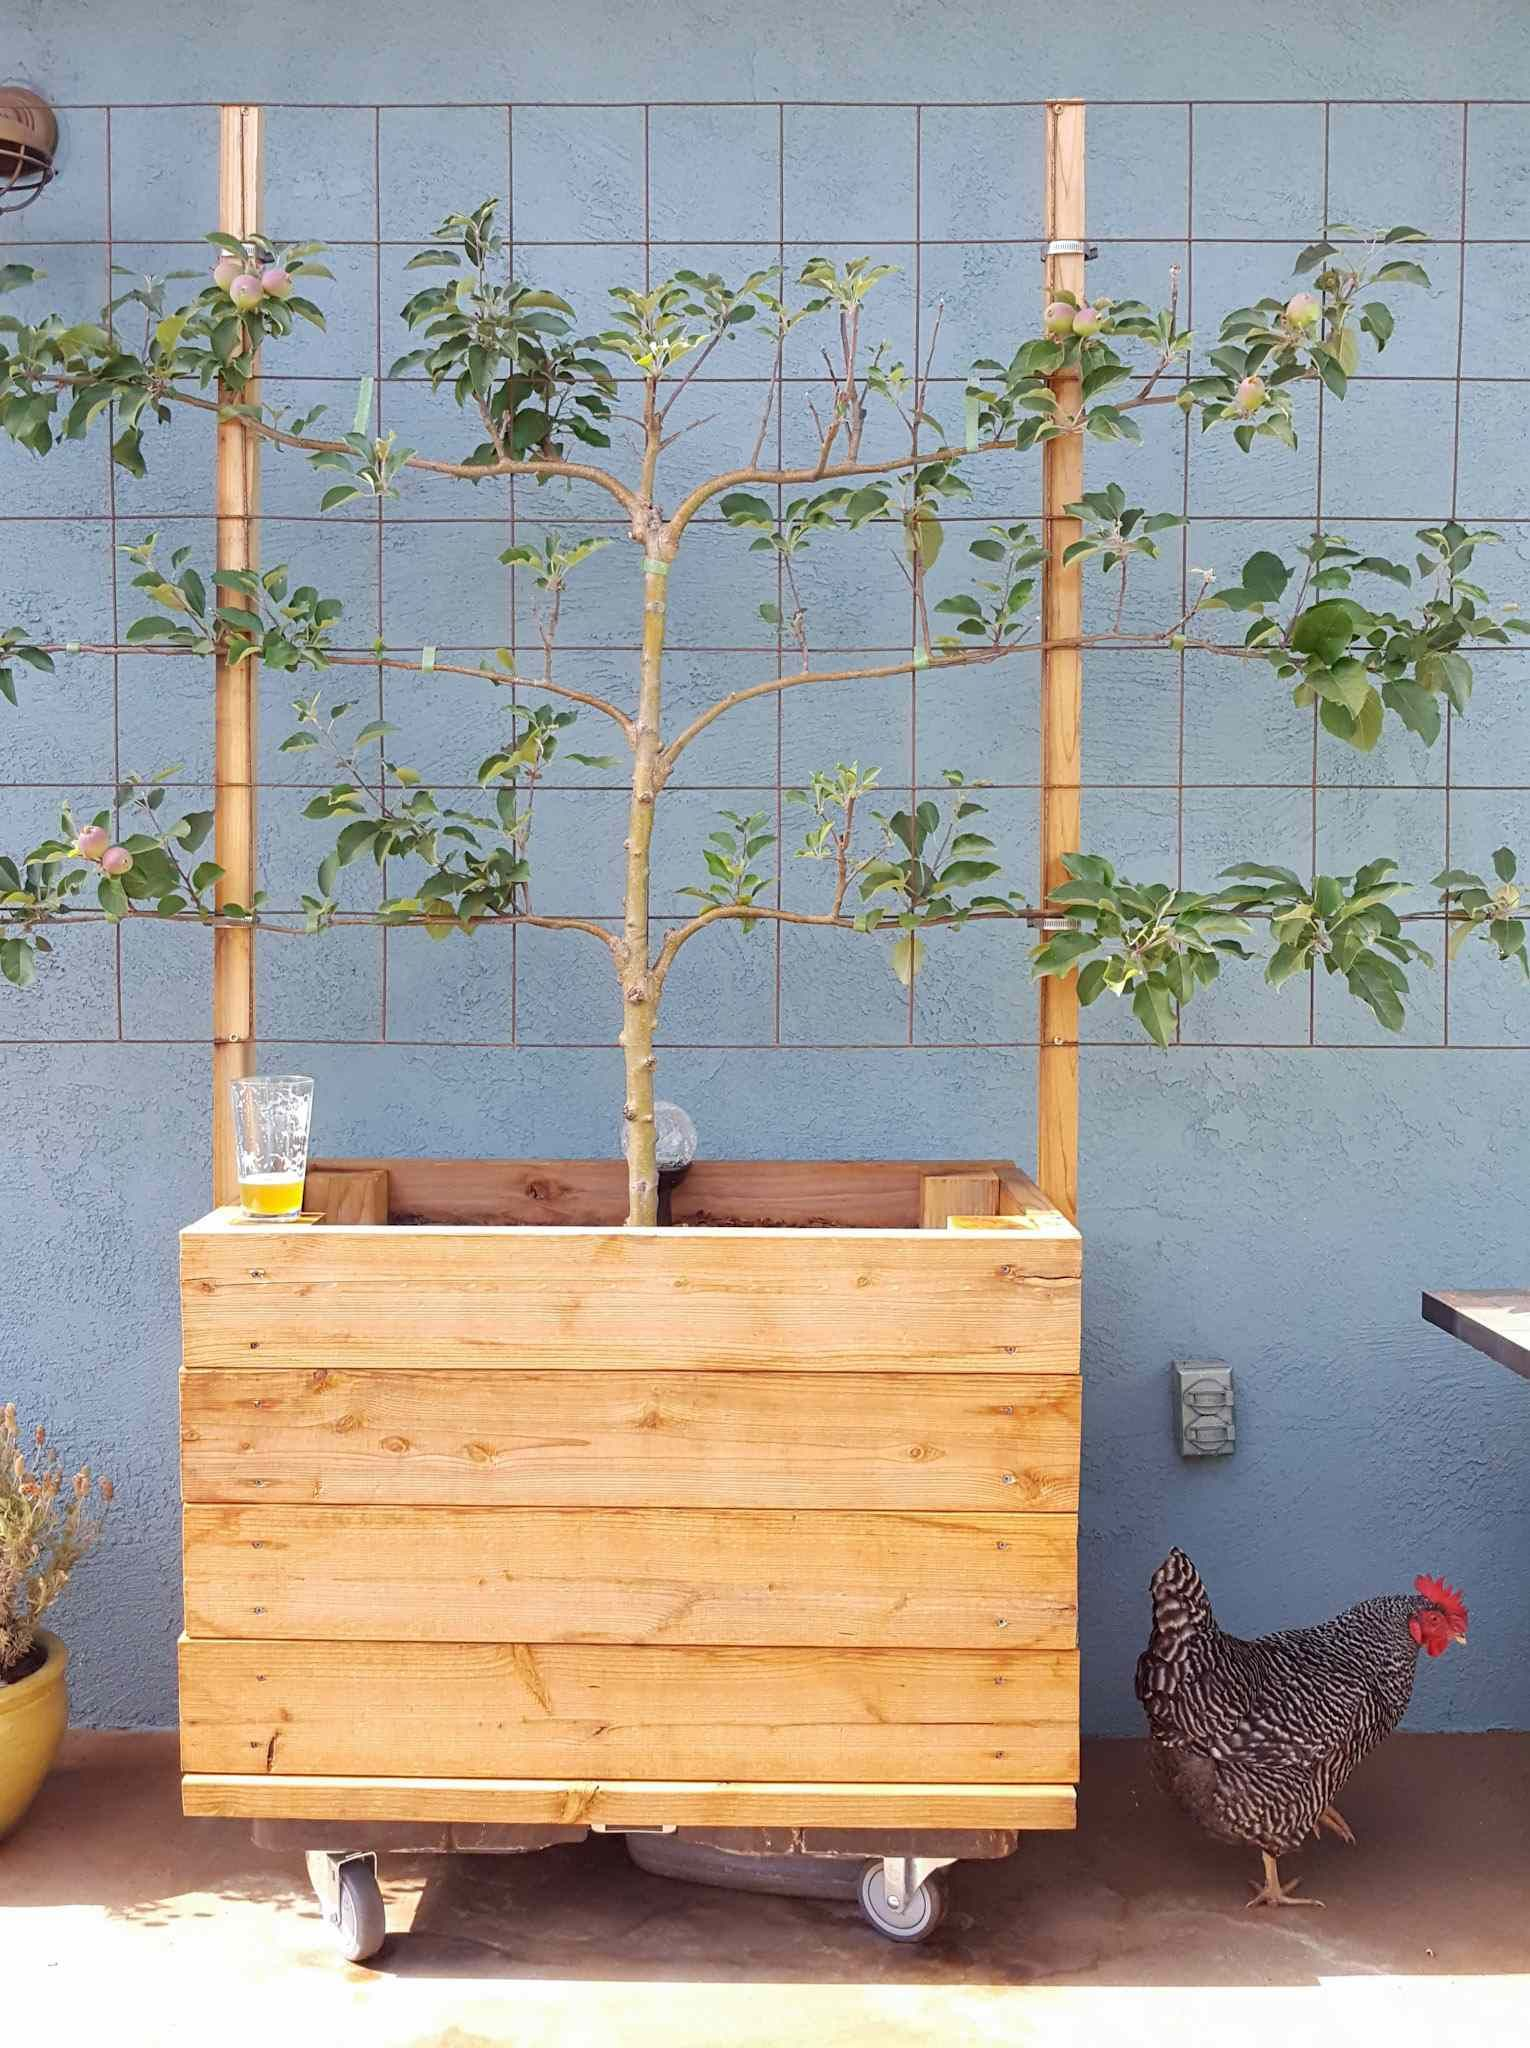 How to Build a Raised Garden Bed on Concrete, Patio, or